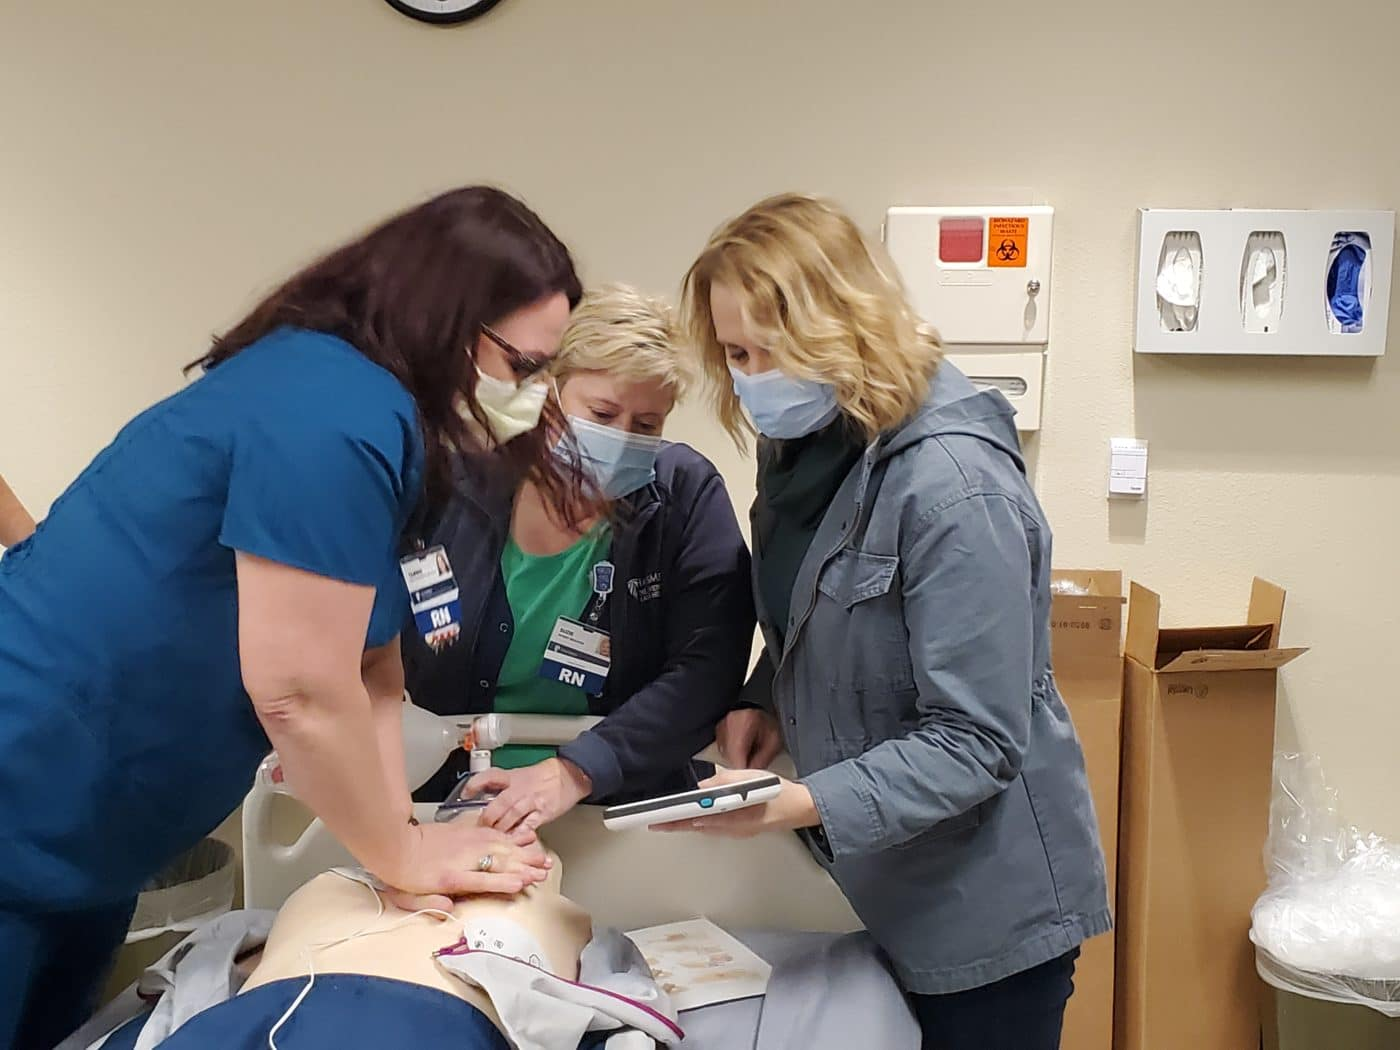 CPR Mannequins Added to Simulation Lab